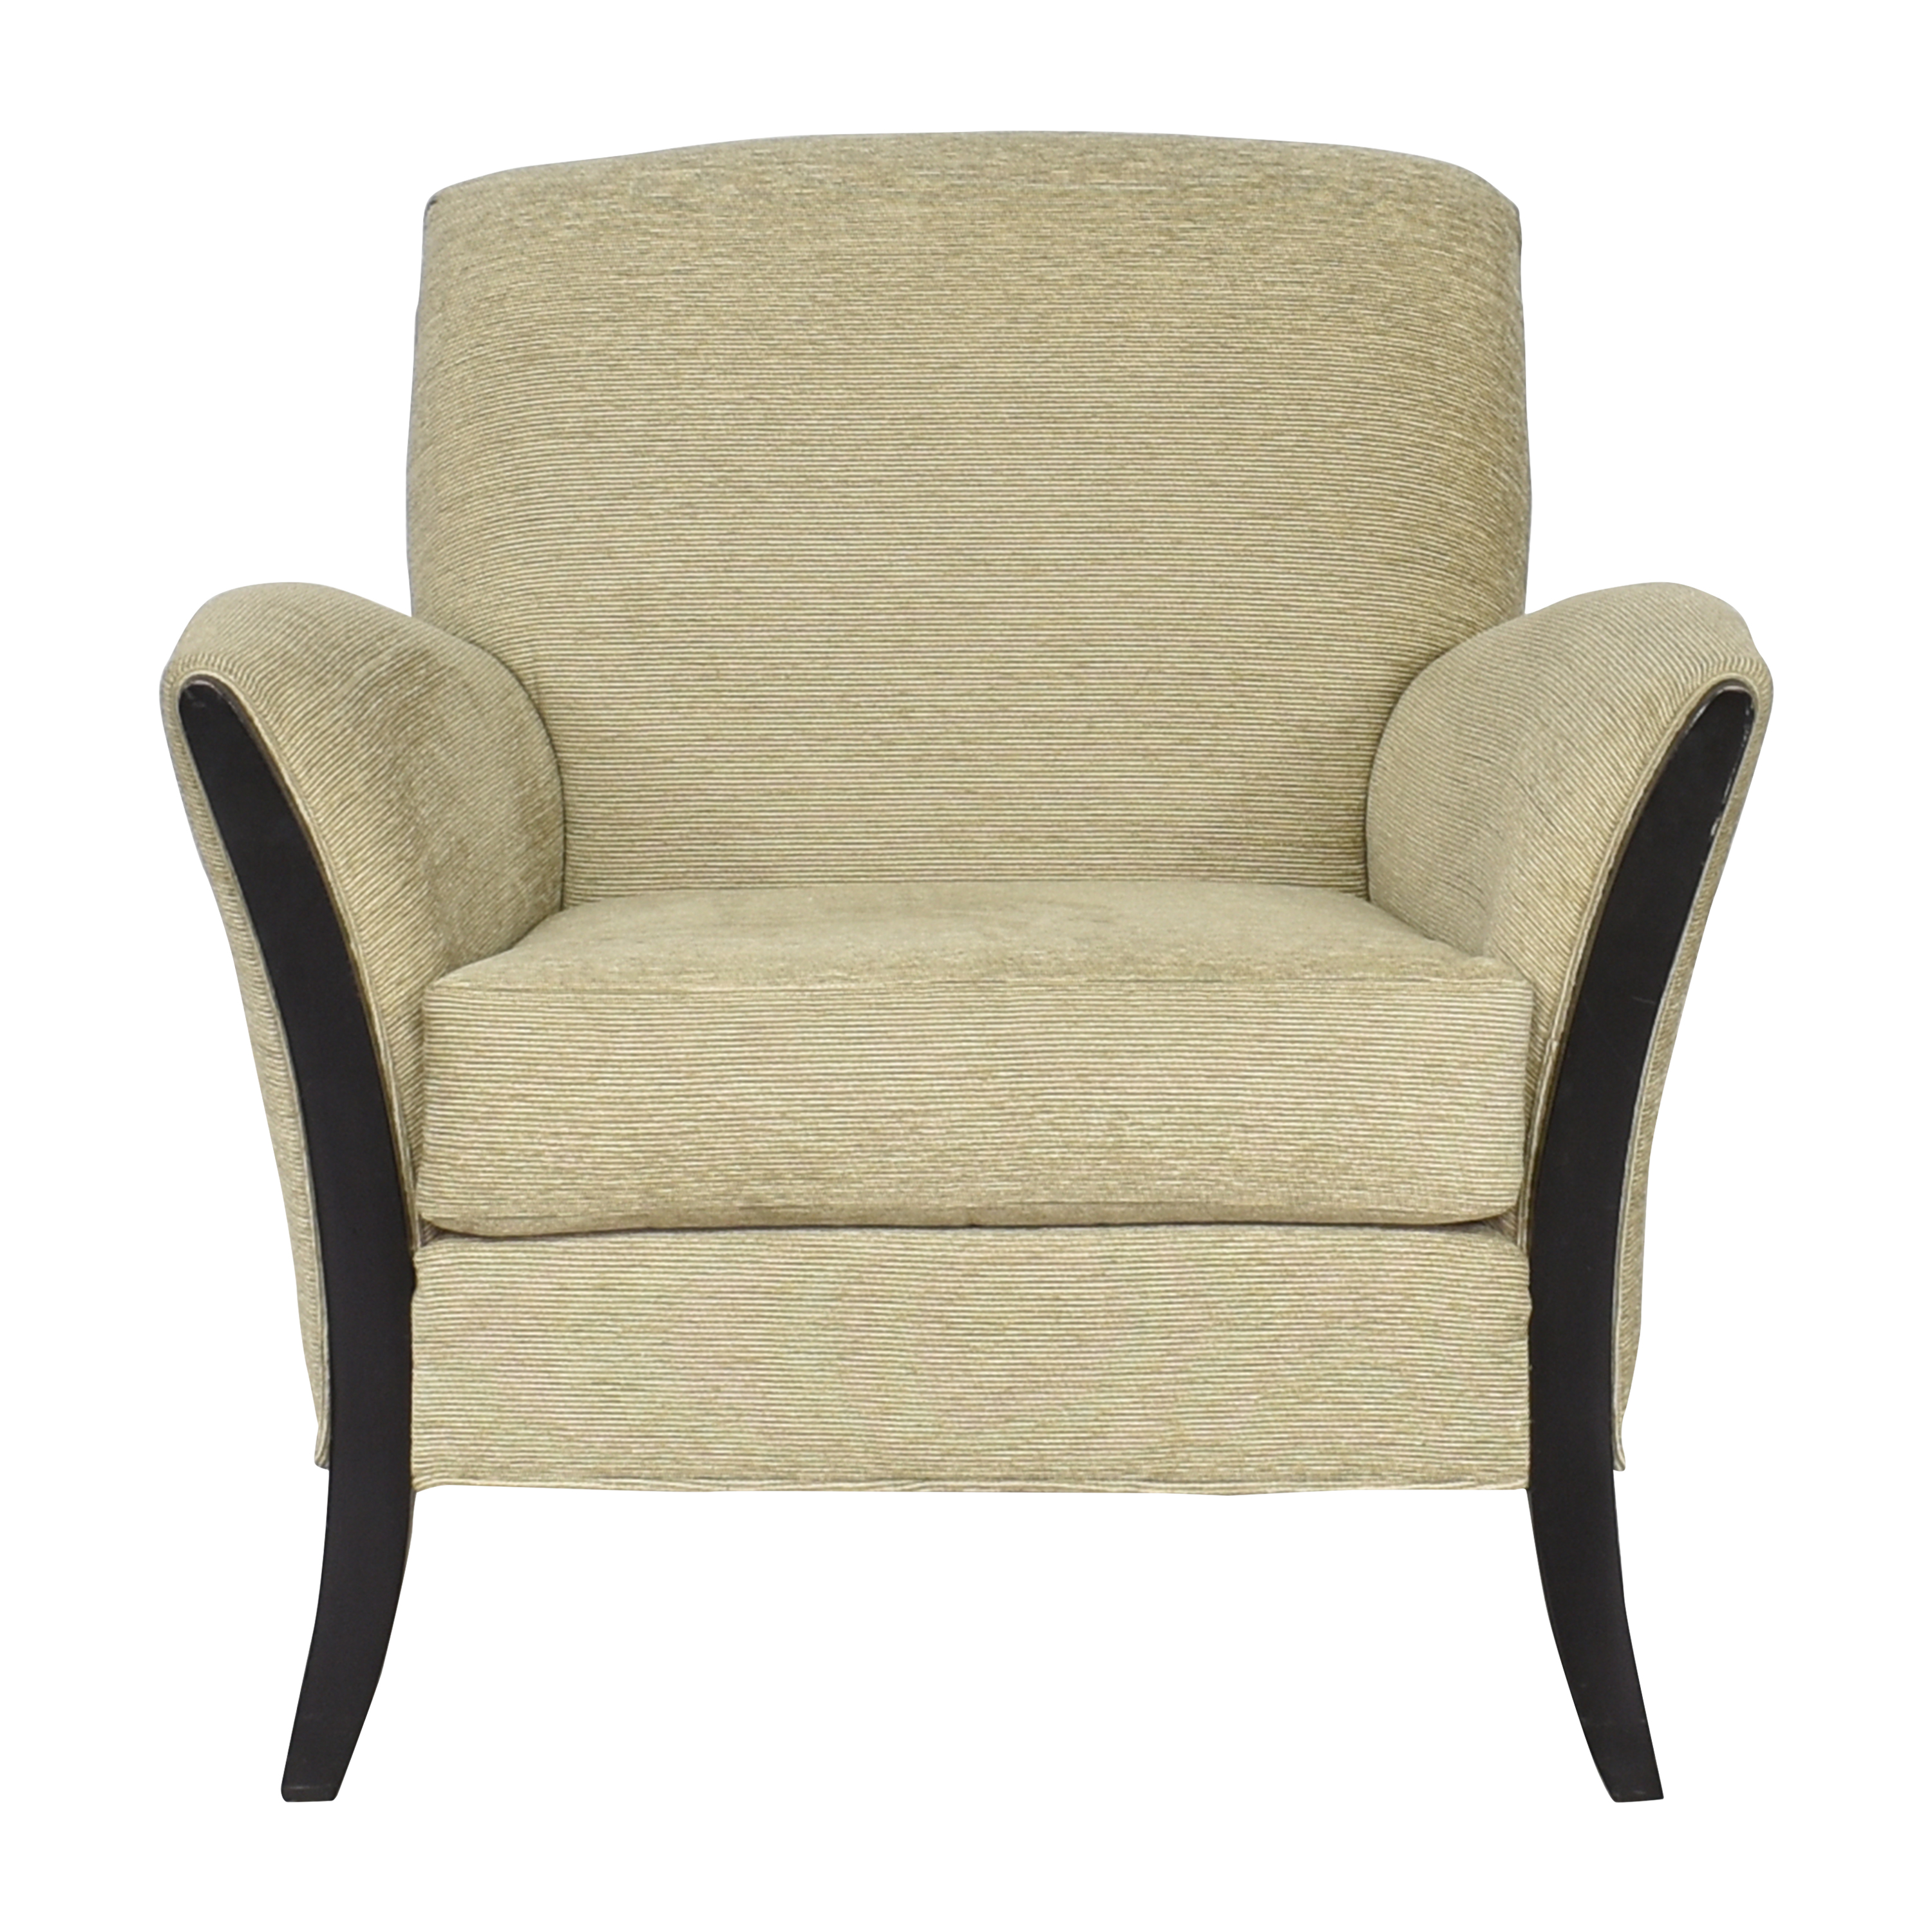 Thayer Coggin Upholstered Club Chair sale